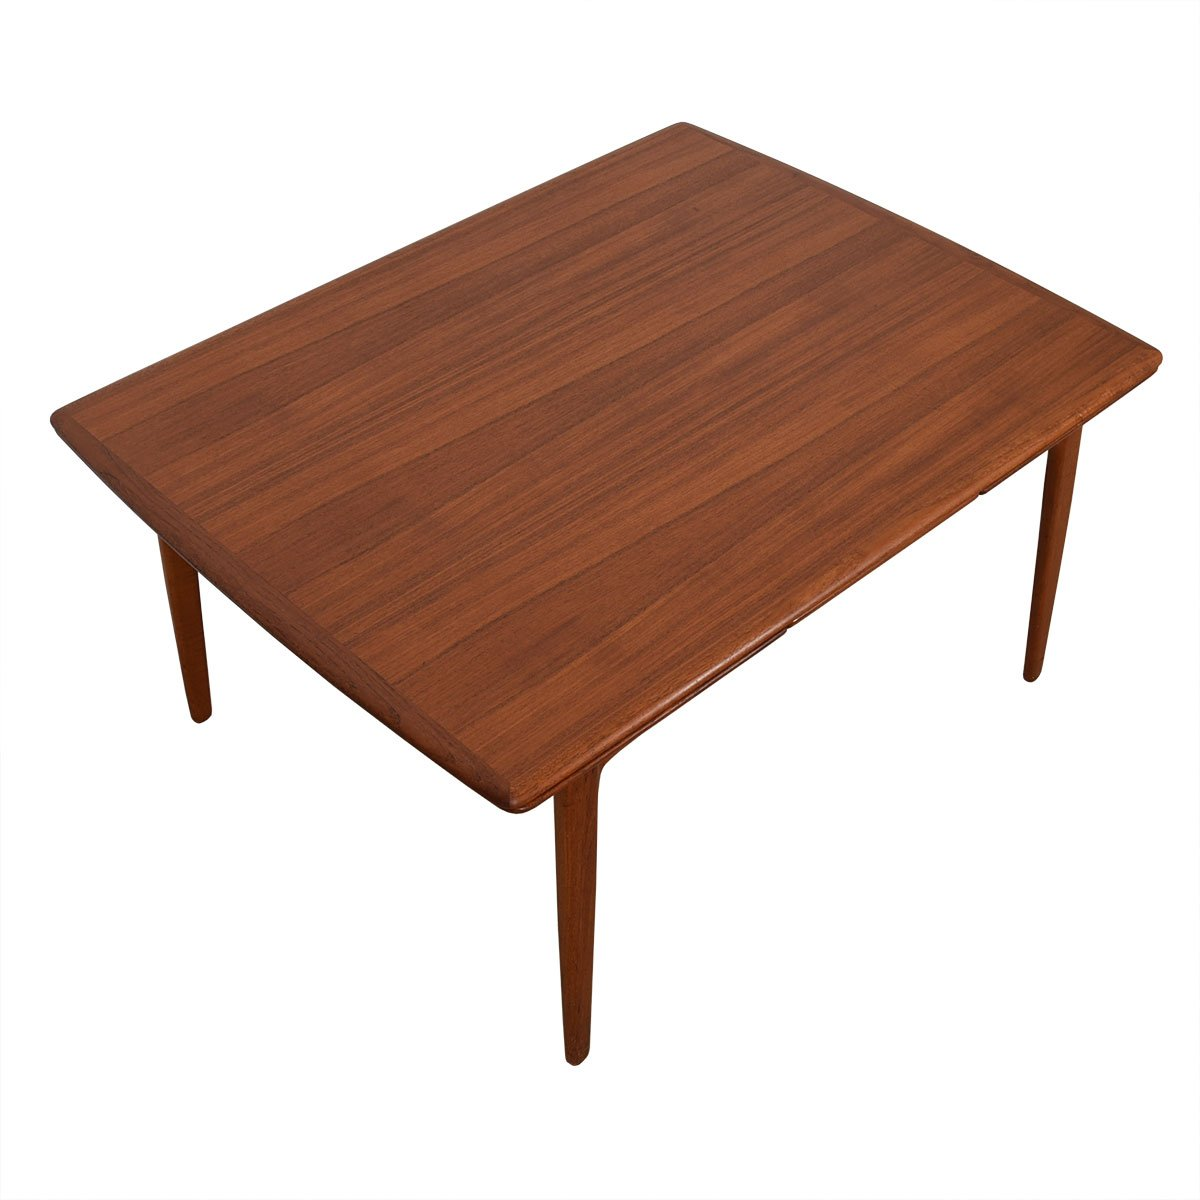 Kofod-Larsen Deep Danish Modern Teak Expanding Dining Table